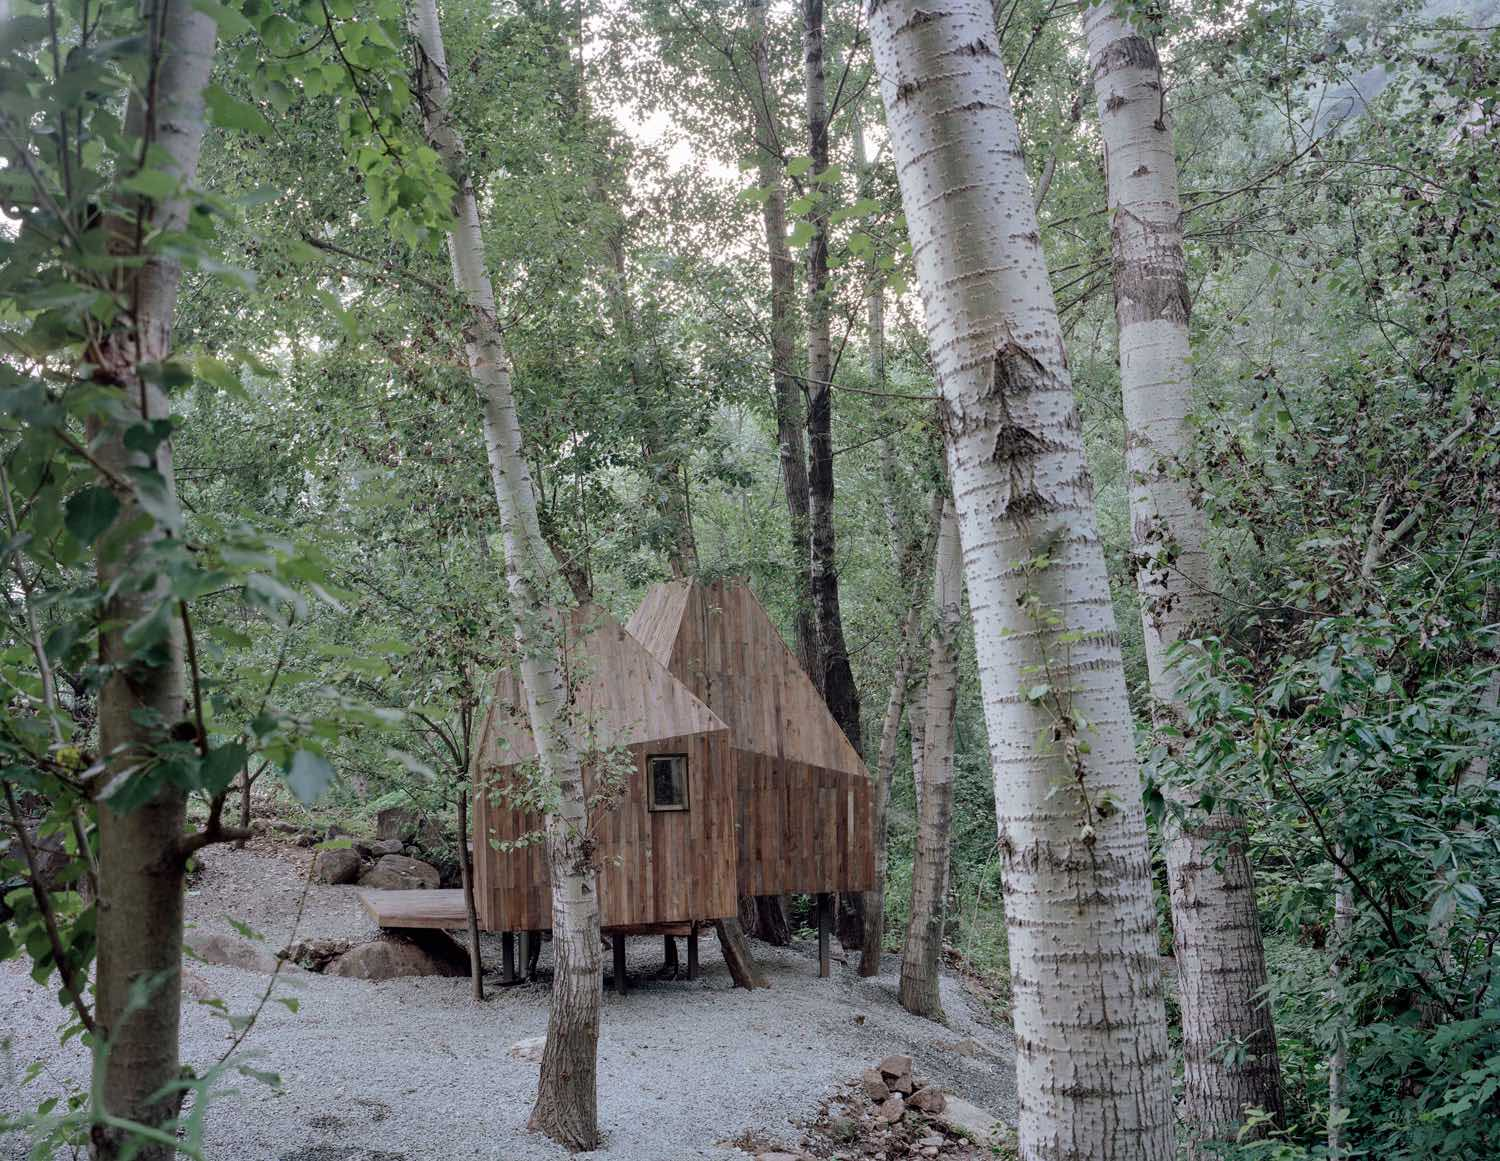 Architecture-Wee-Studio-Treehouse-3